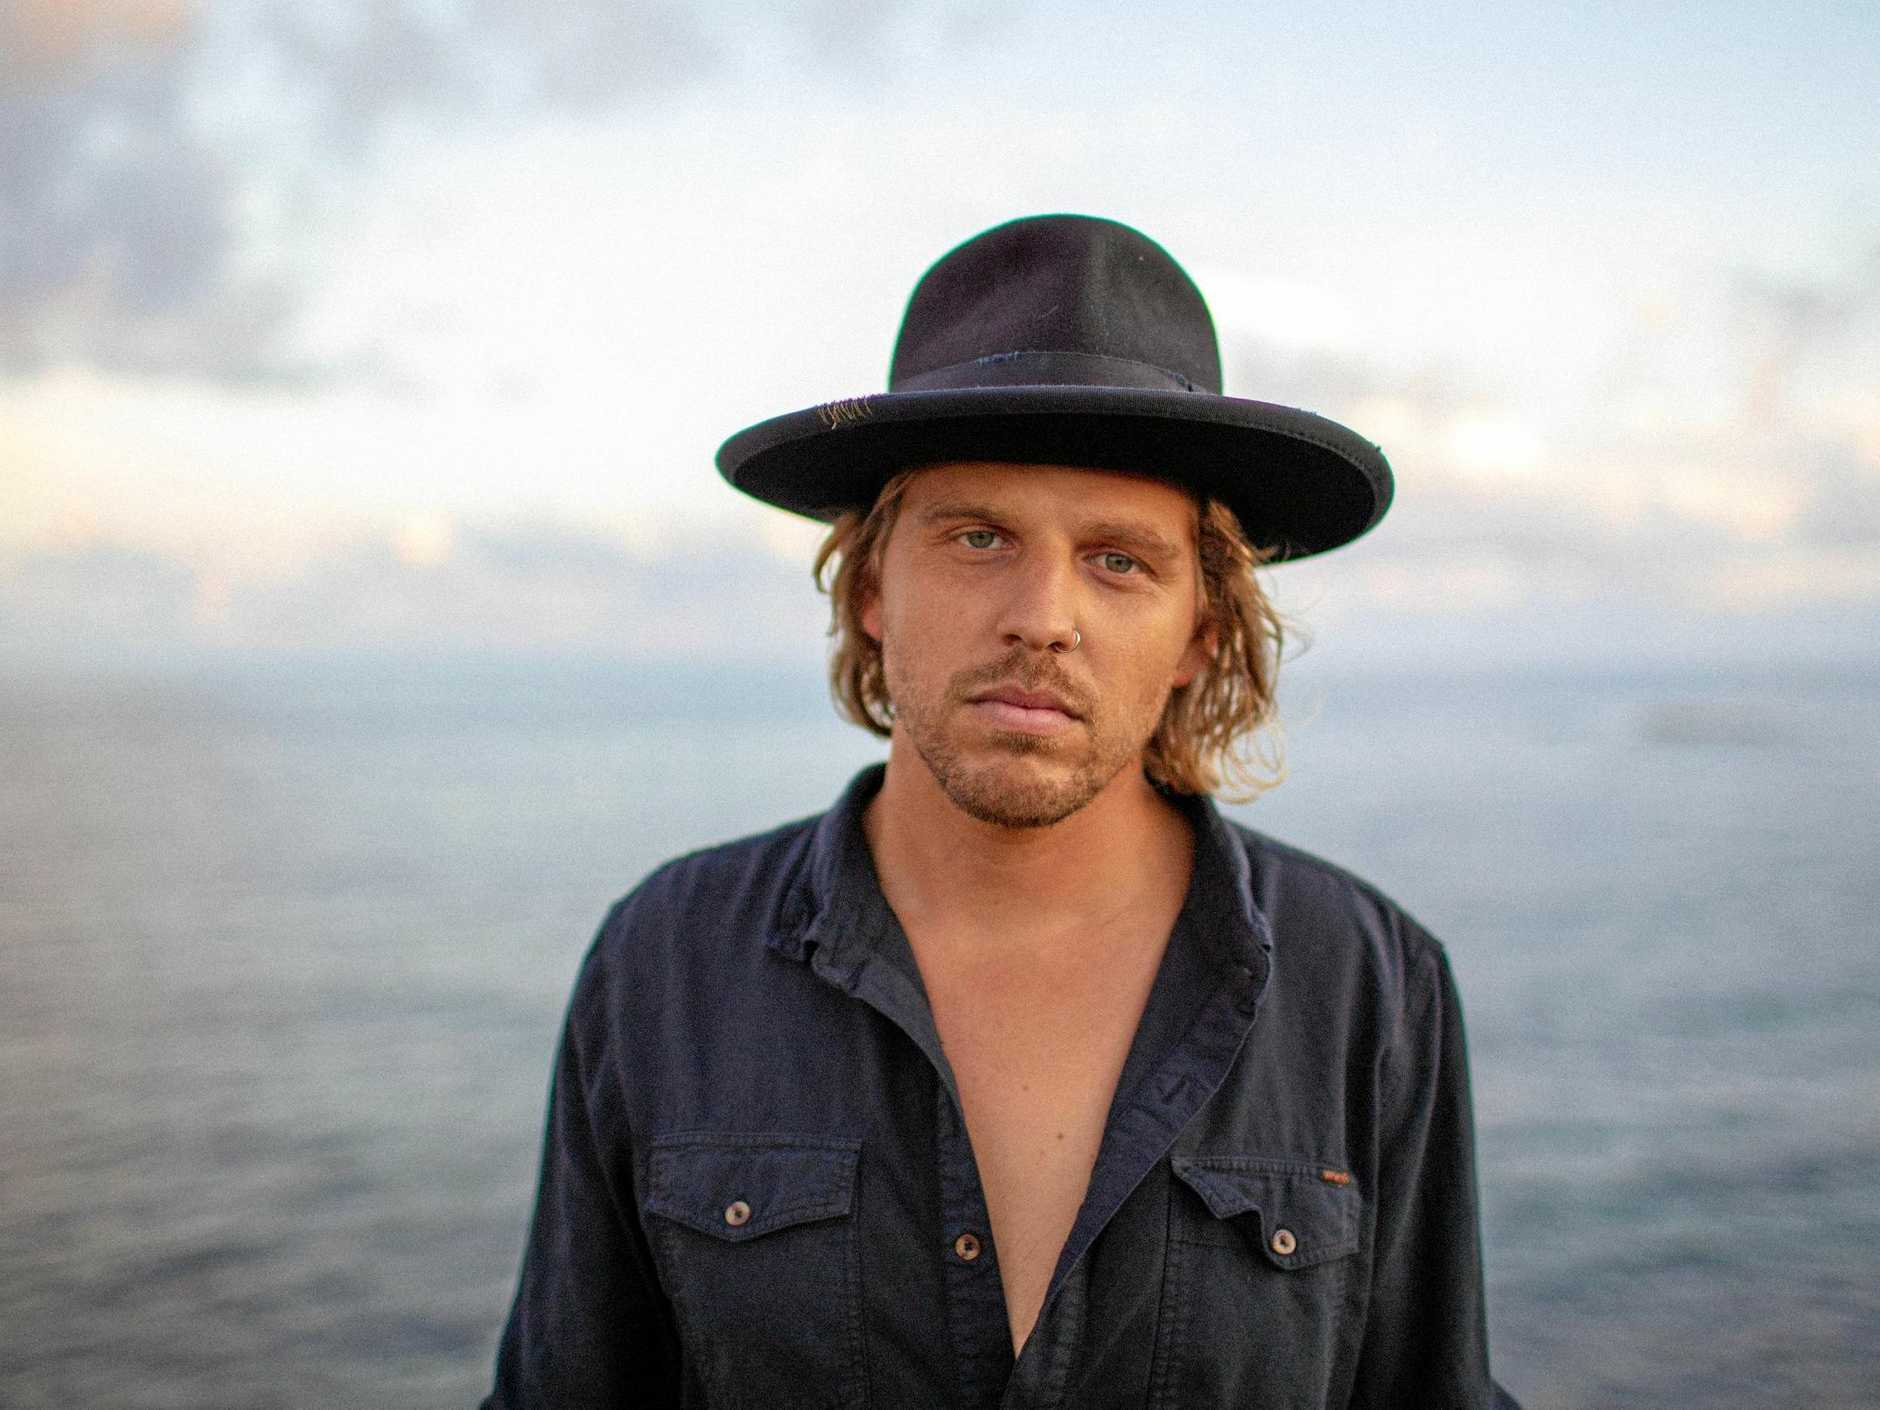 FROM THE SOUL: Kyle Lionhart will be playing at the Sunshine Coast Festival Sea N Sound on June 8.